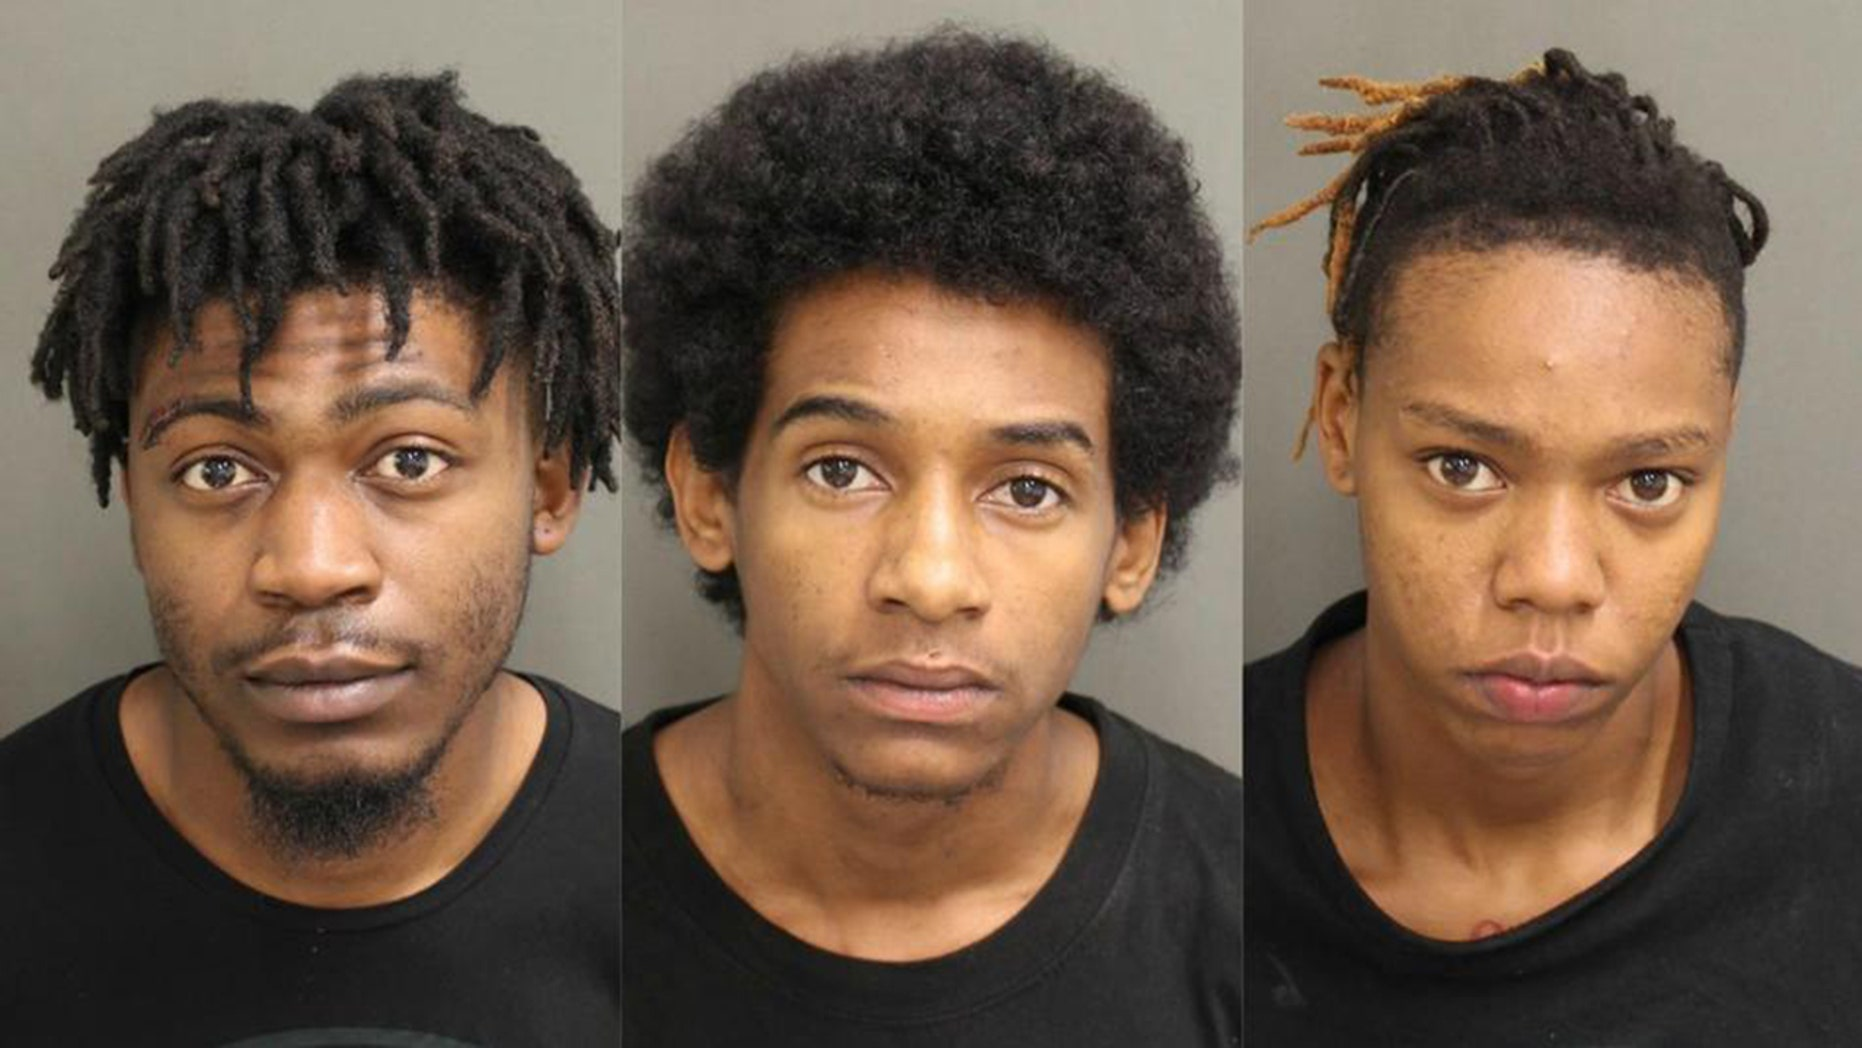 Three of the four suspects arrested for stealing over $340,000 worth of jewelry at an Orange County mall in Florida on Thursday